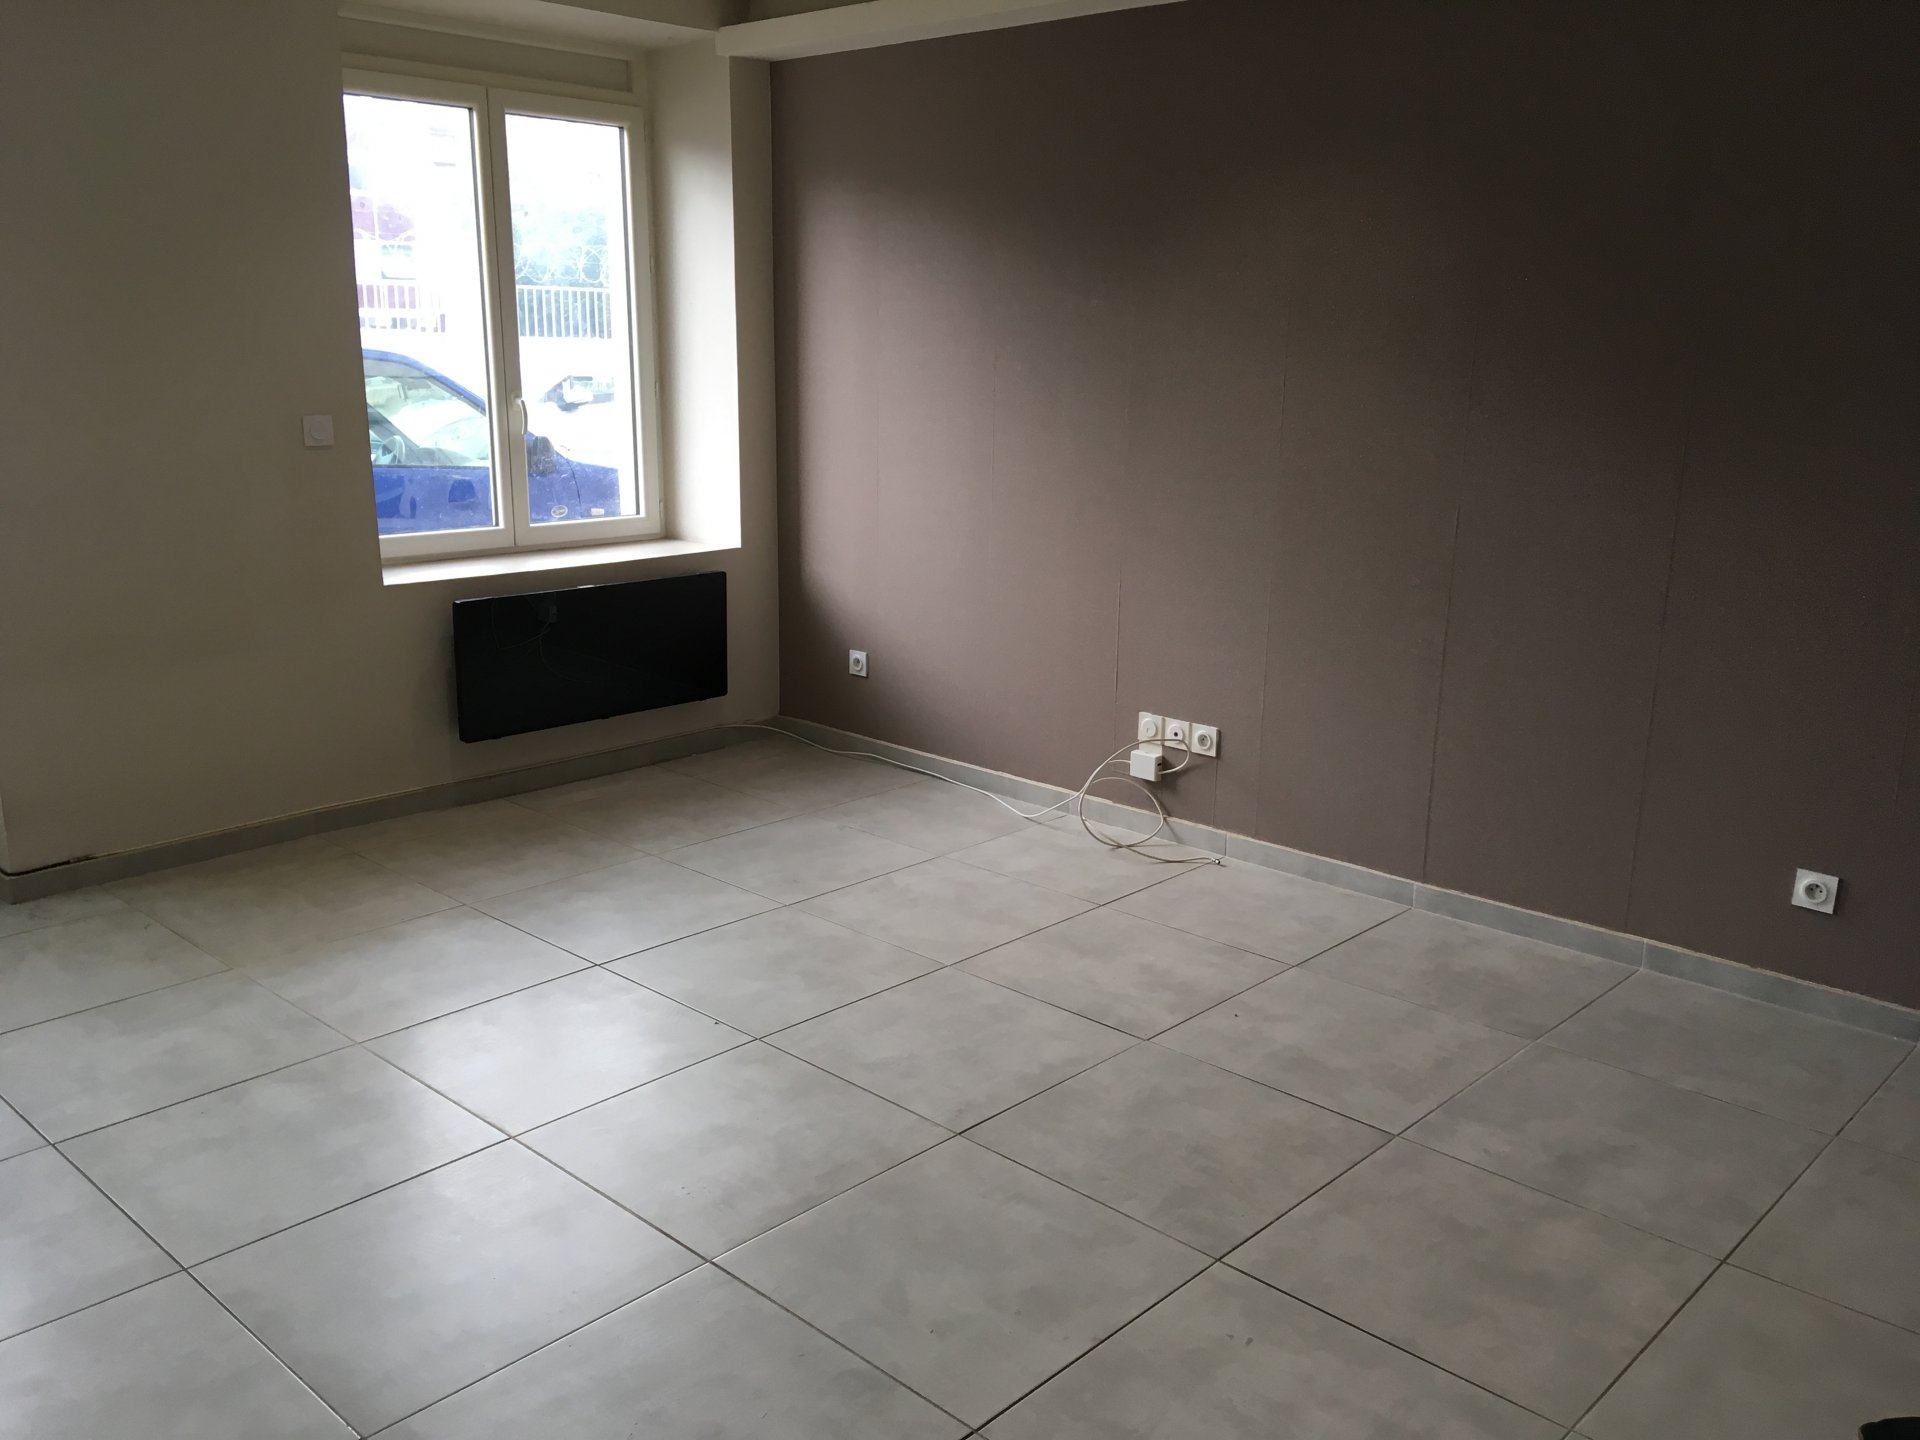 SAINT-ETIENNE TRIFILERIE- Appartement T2 50 m²